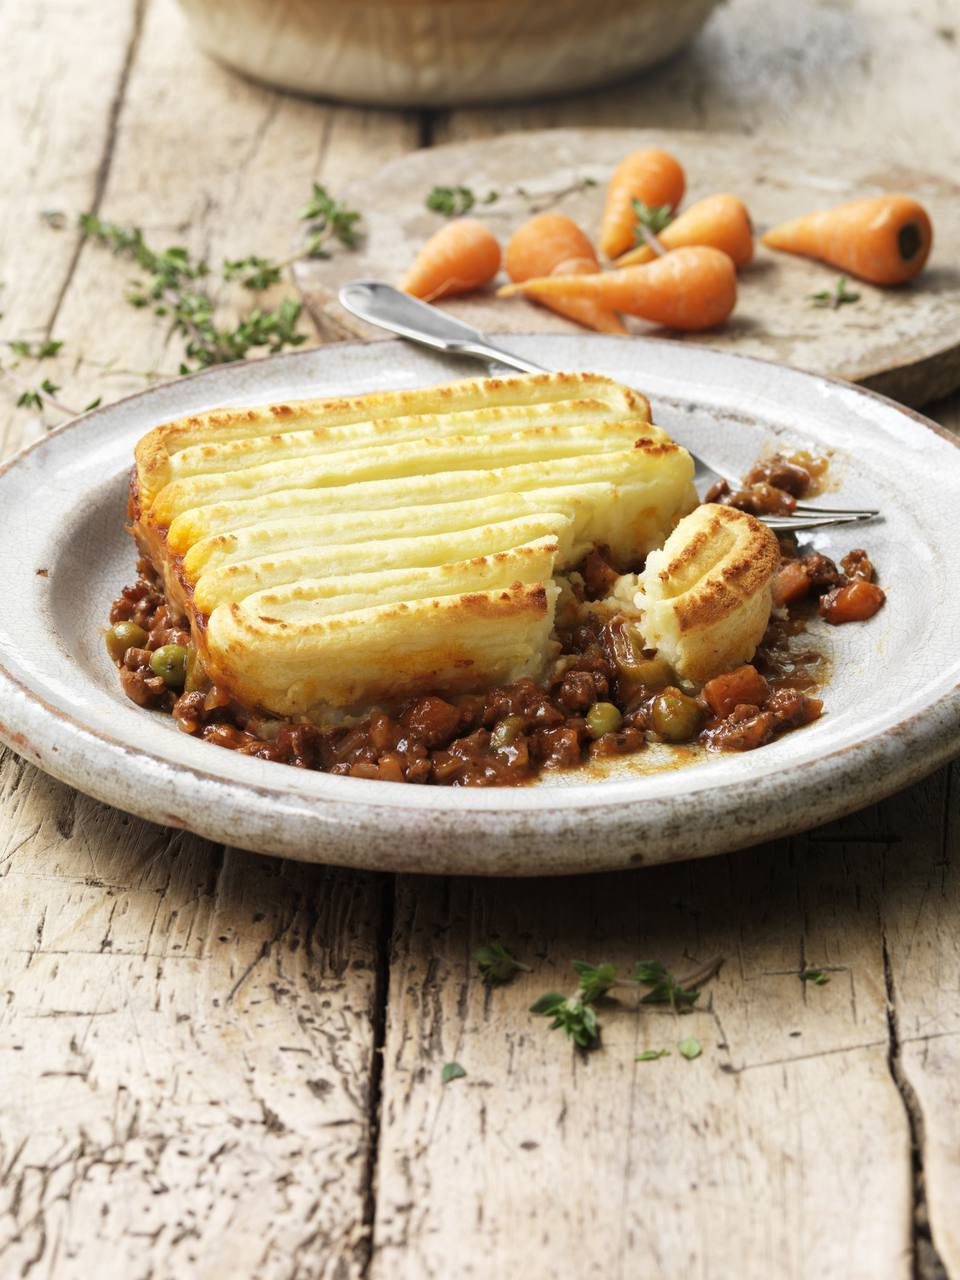 Vegan shepard's pie made with texturized vegetable protein (TVP)